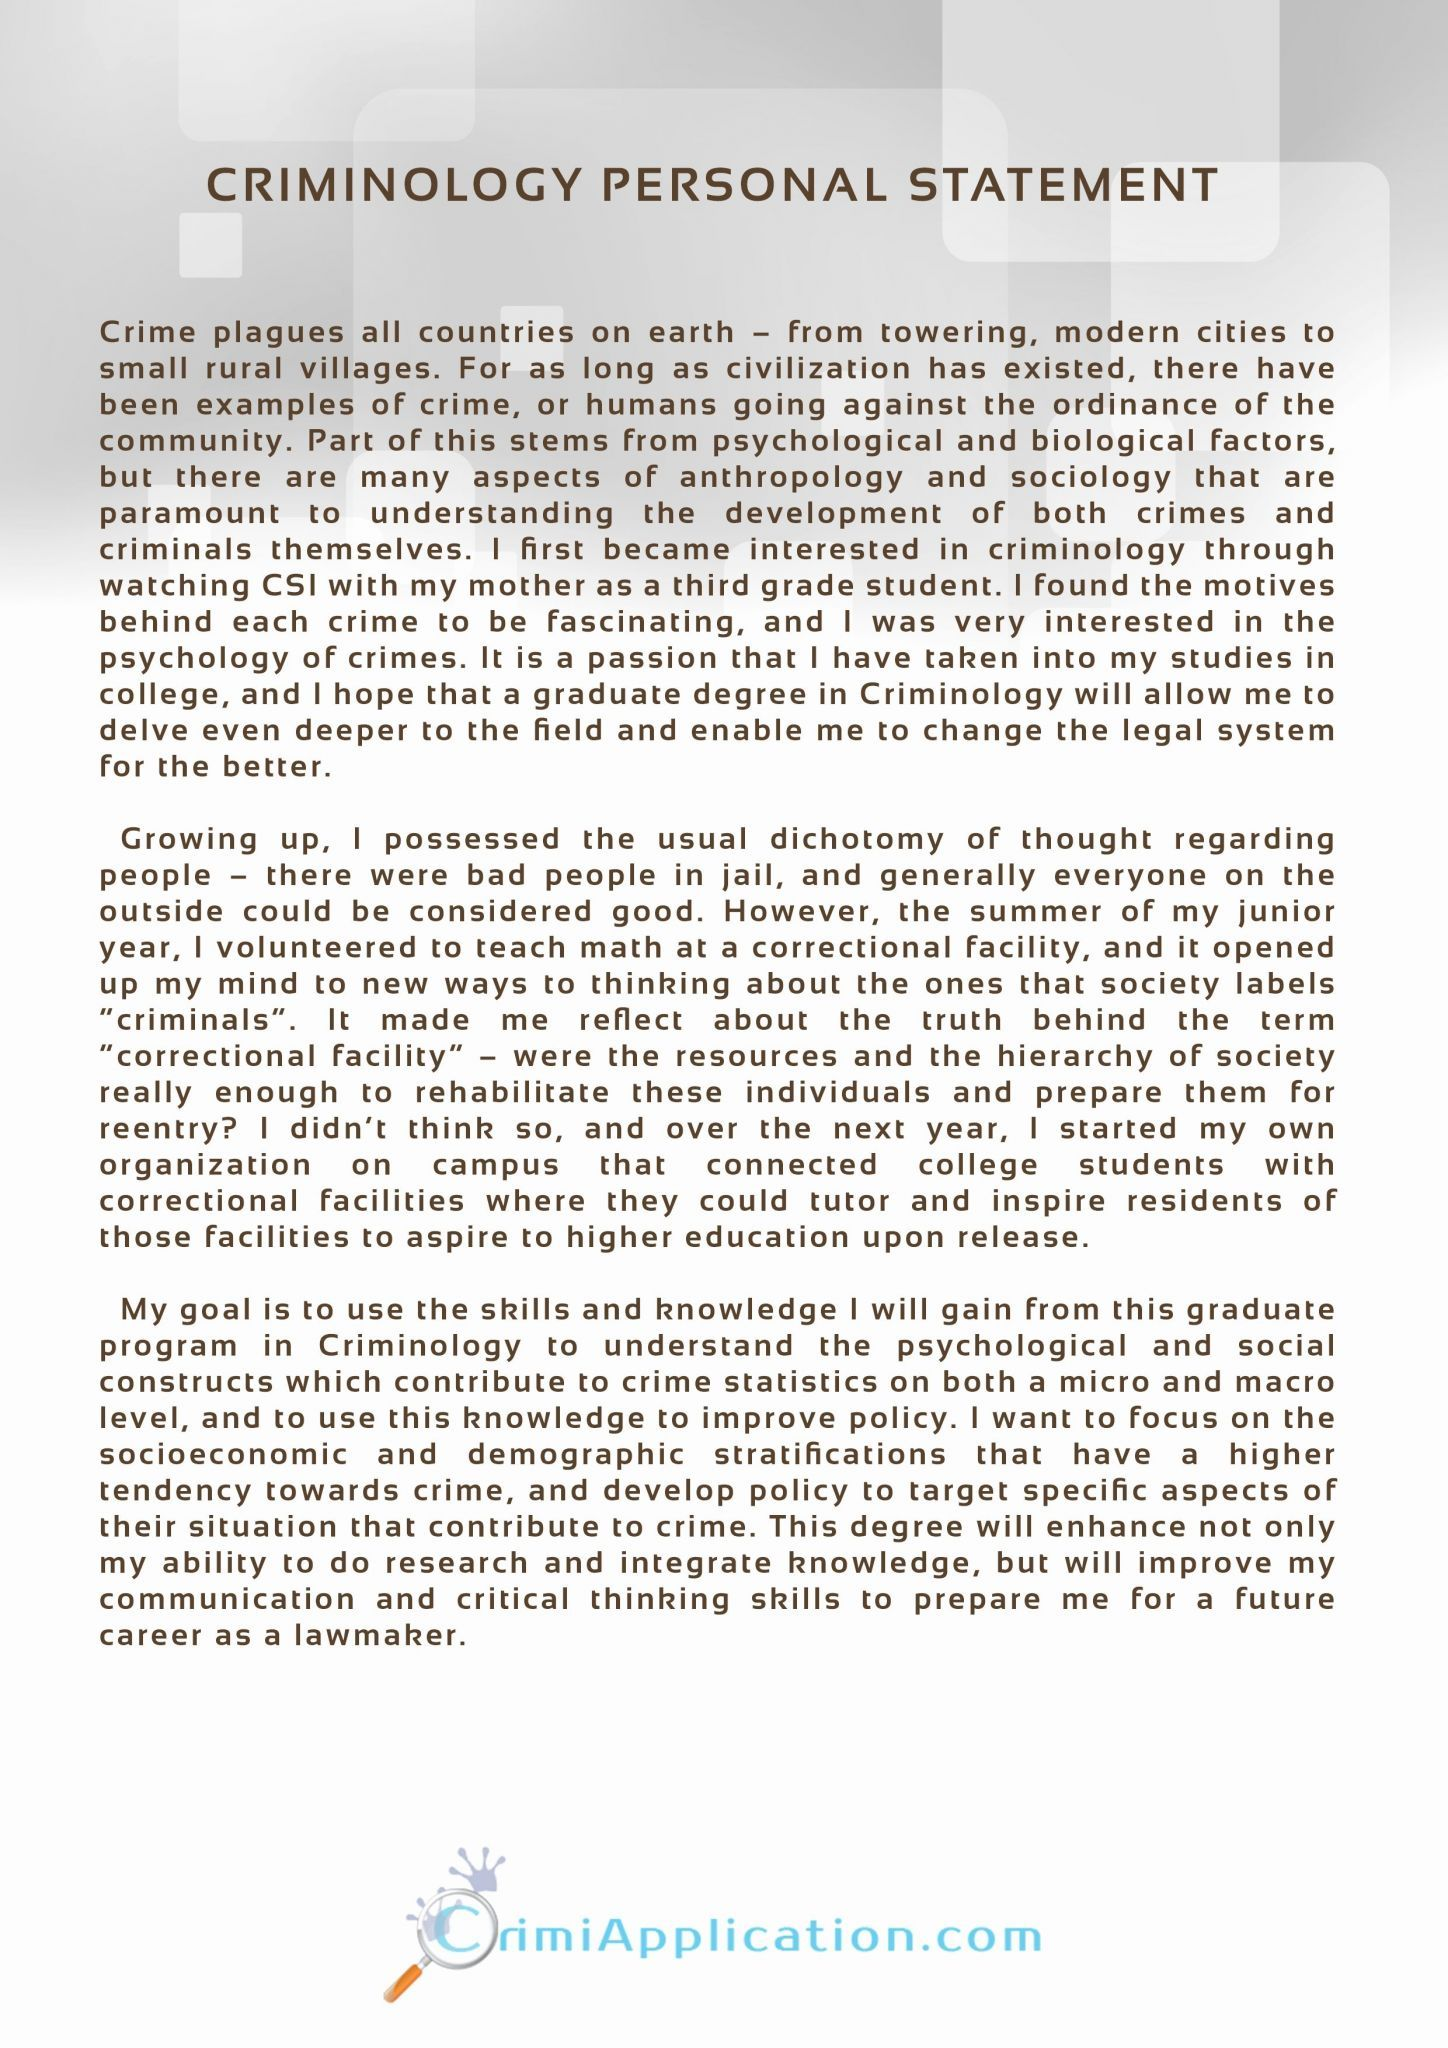 Personal Statement Template Example Thesi Clinical Psychology Doctorate Uk